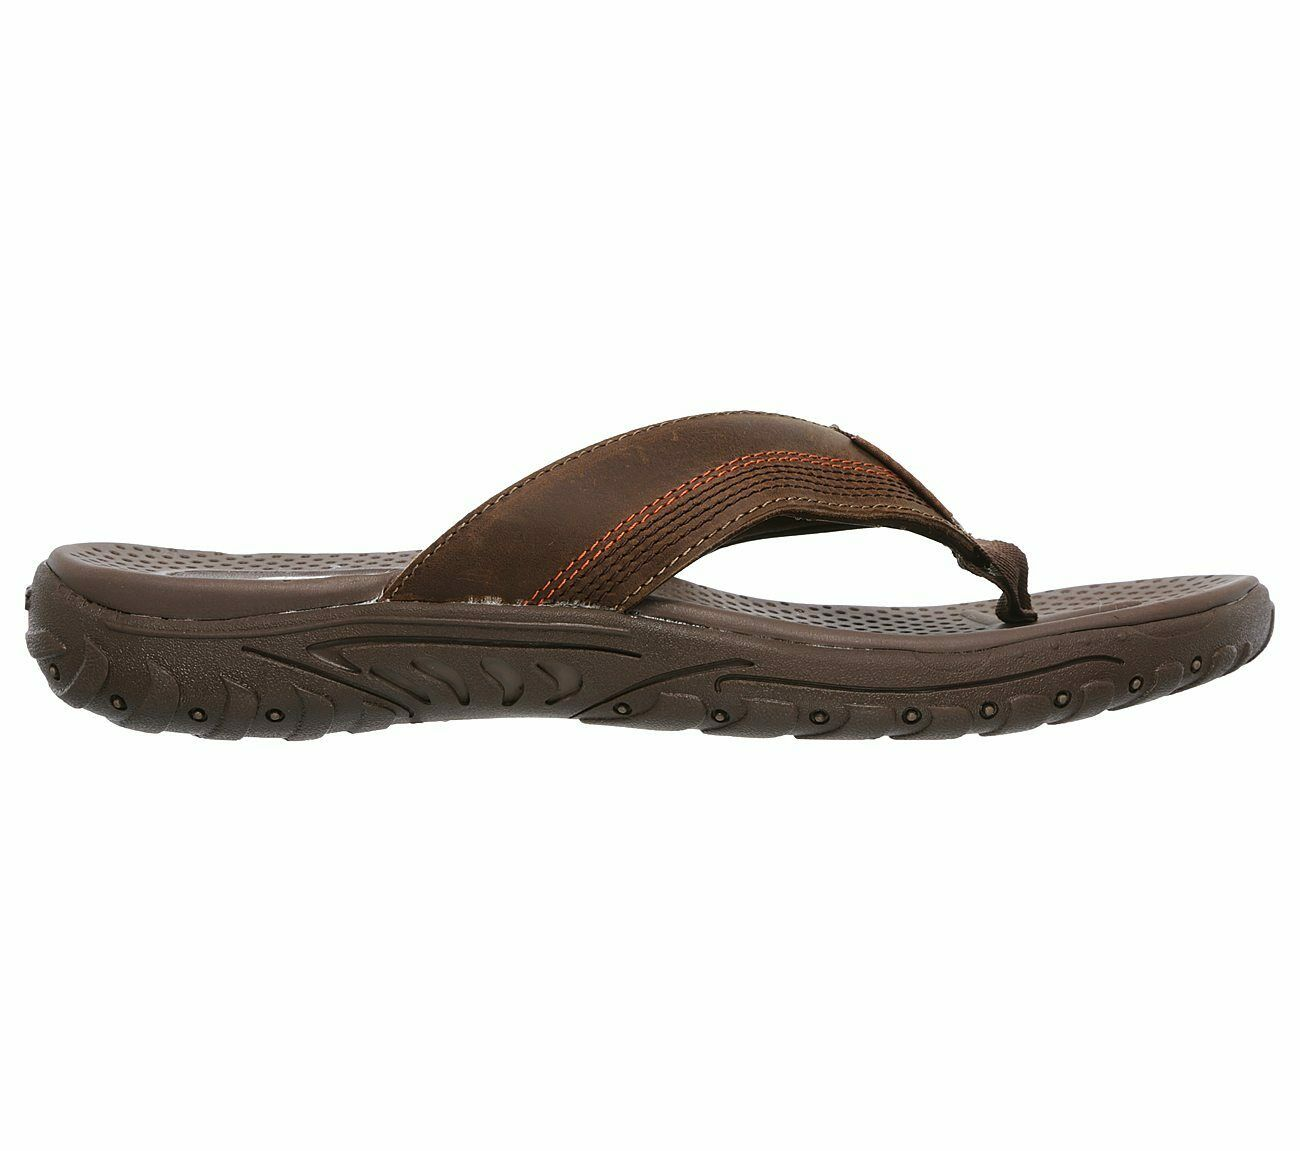 8d7605cc989f Skechers Relaxed Fit  Reggae-Cobano Flip Flops Mens Toe Post Thong Sandals  65460